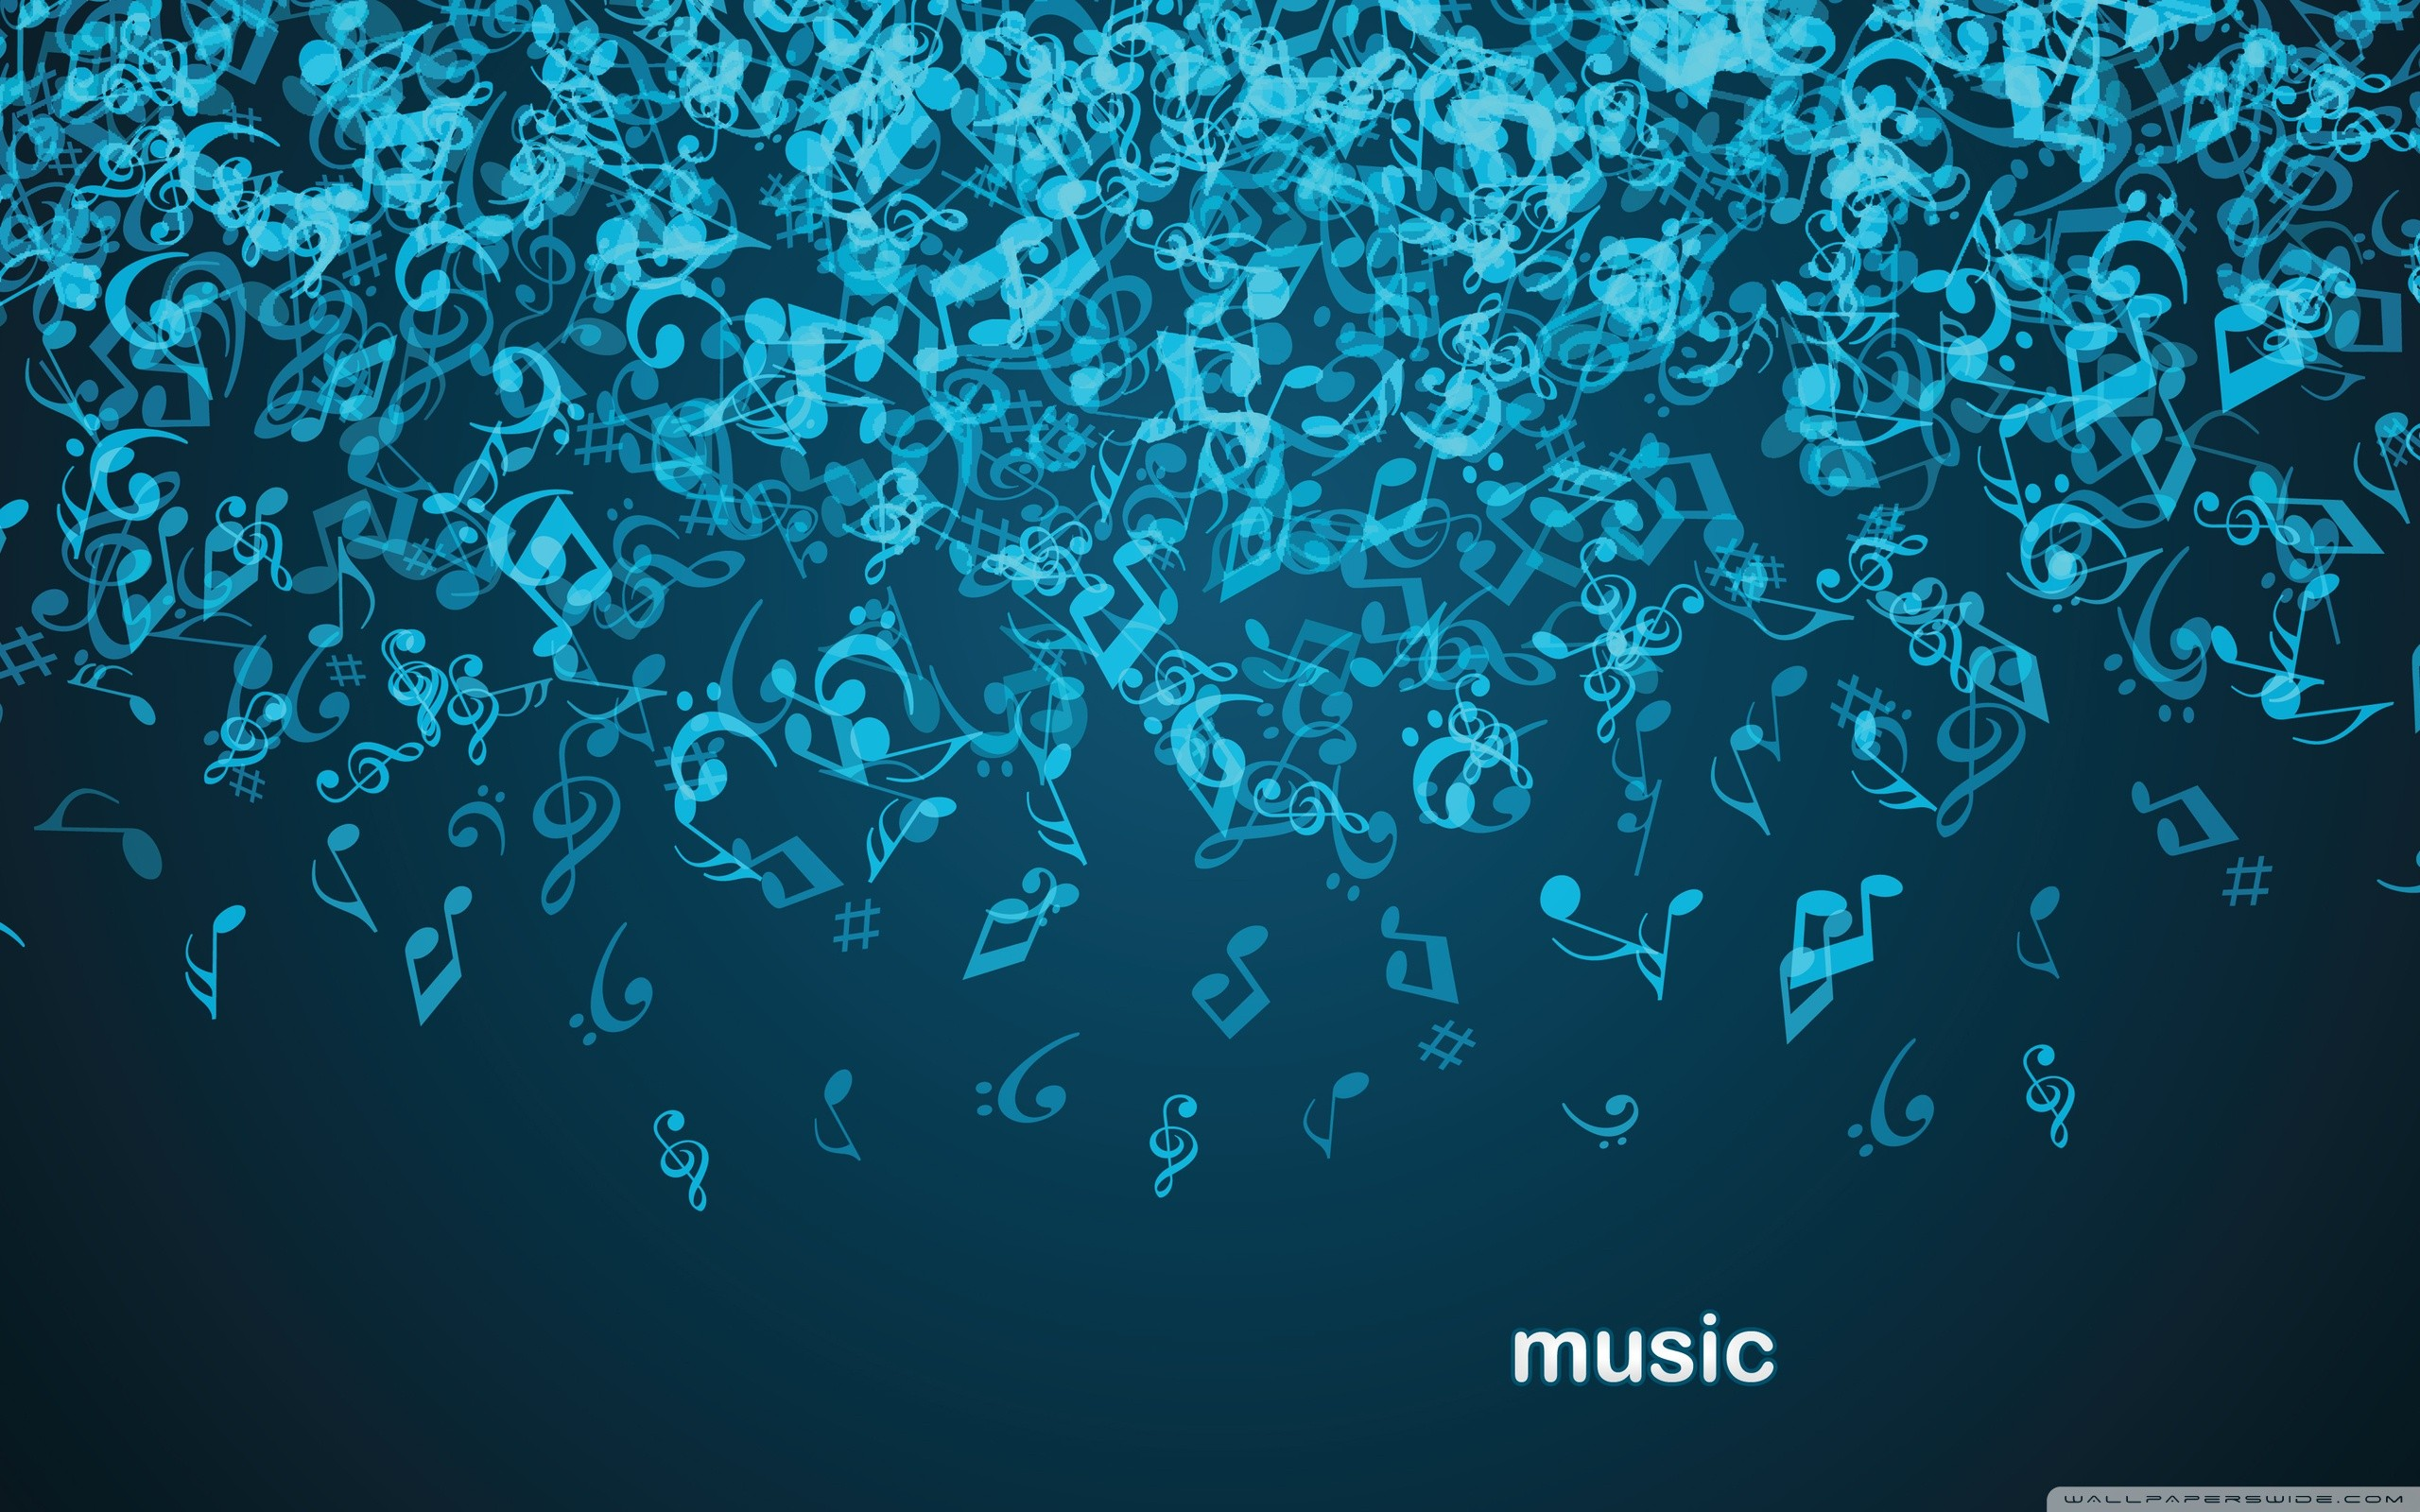 music notes wallpaper download free high resolution backgrounds